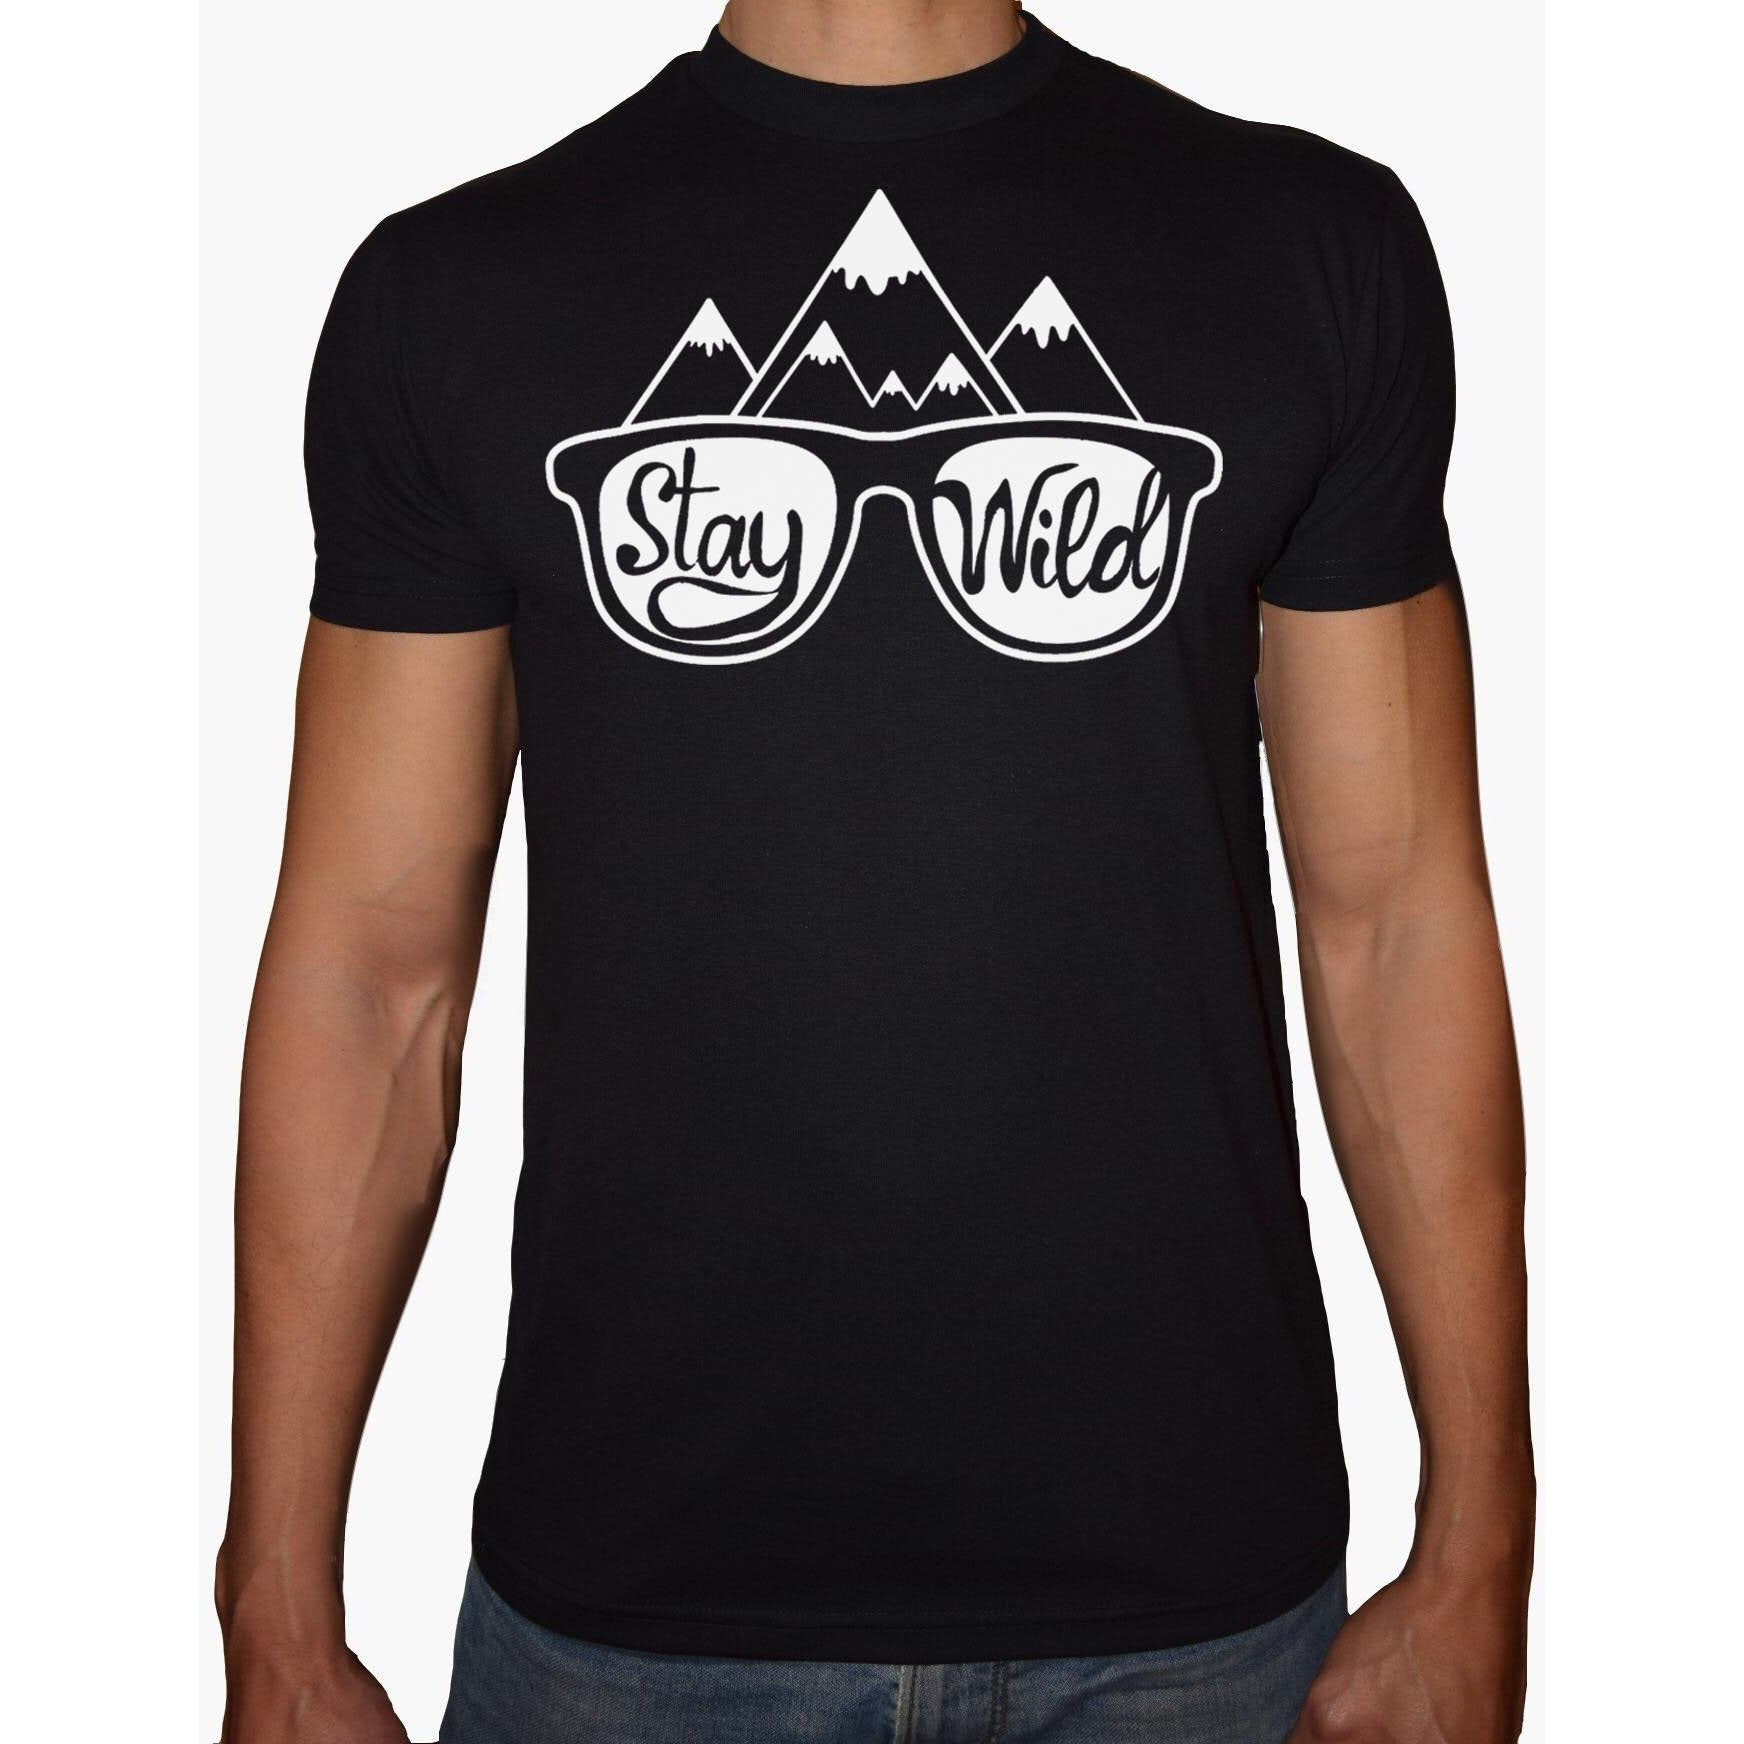 Phoenix BLACK Round Neck Printed T-Shirt Men (Stay wild)